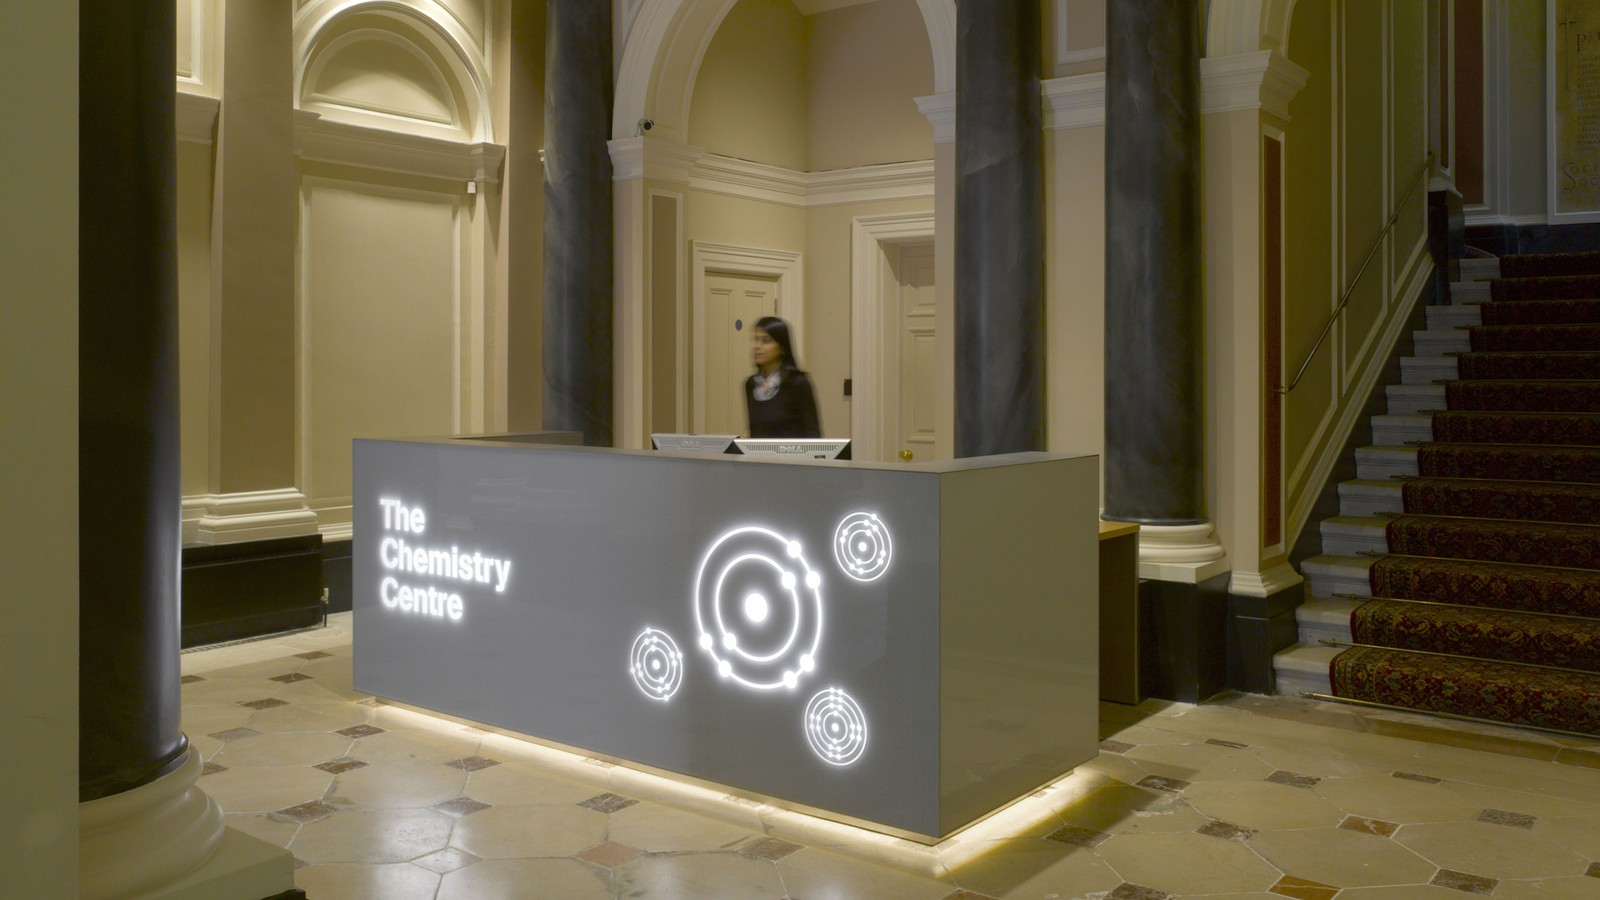 Royal Society of Chemistry 1